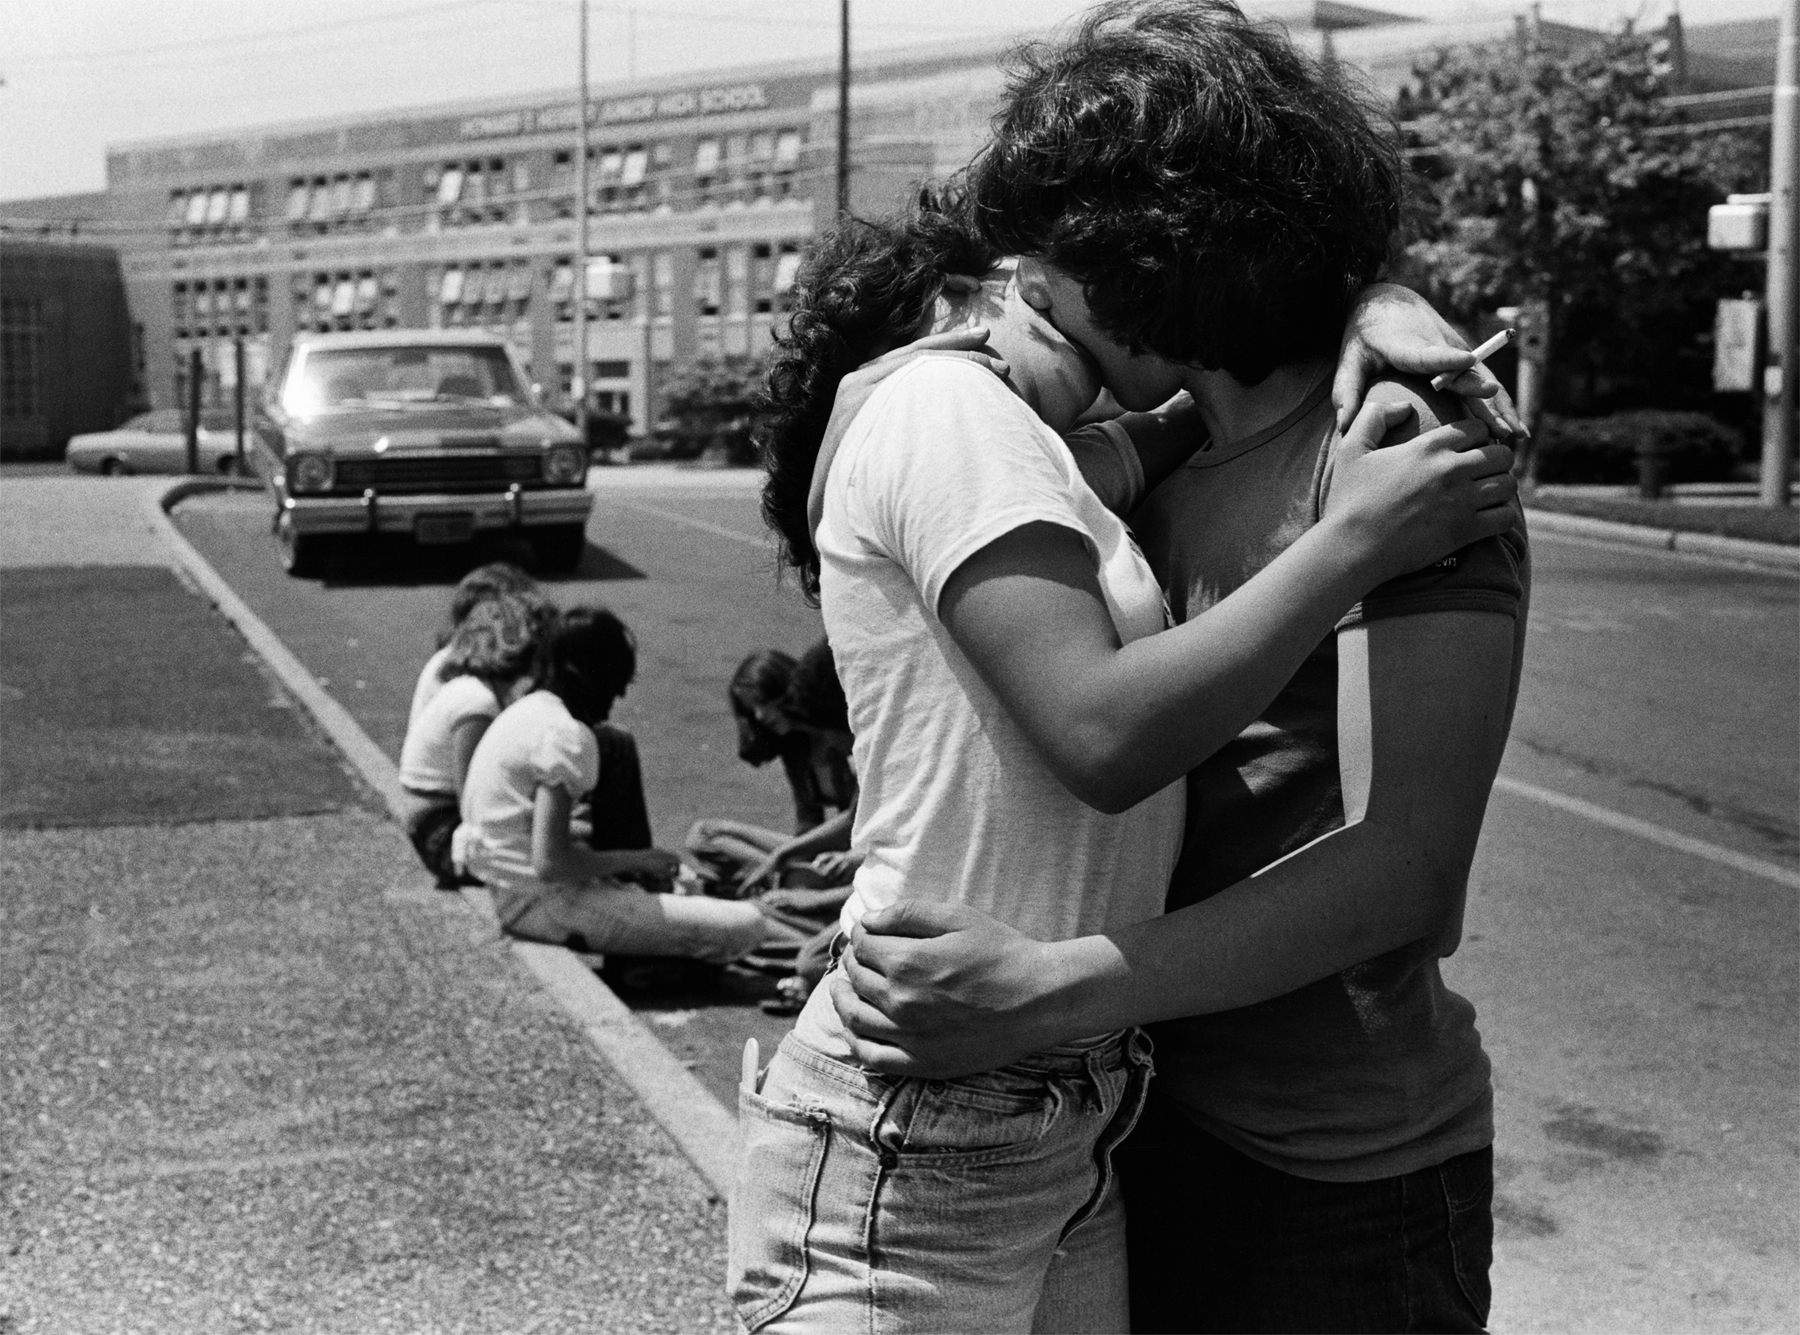 The-Joseph-Szabo-Project-The-Kiss-photo-by-Joseph-Szabo